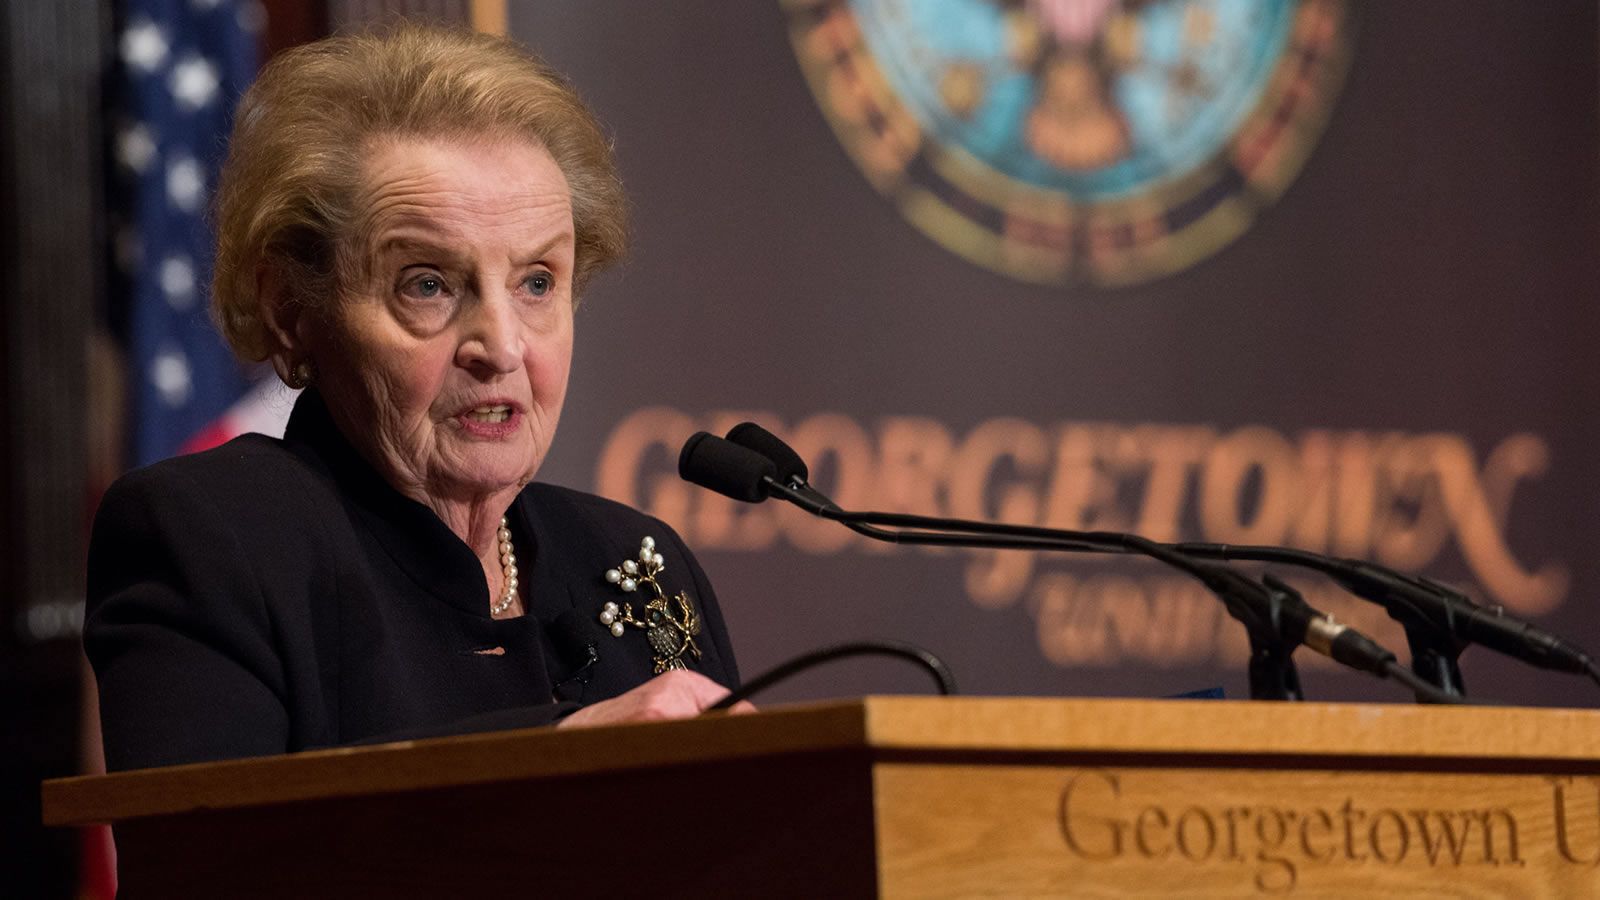 Madeleine Albright Giving Tenth Anniversary Berkley Lecture in 2016